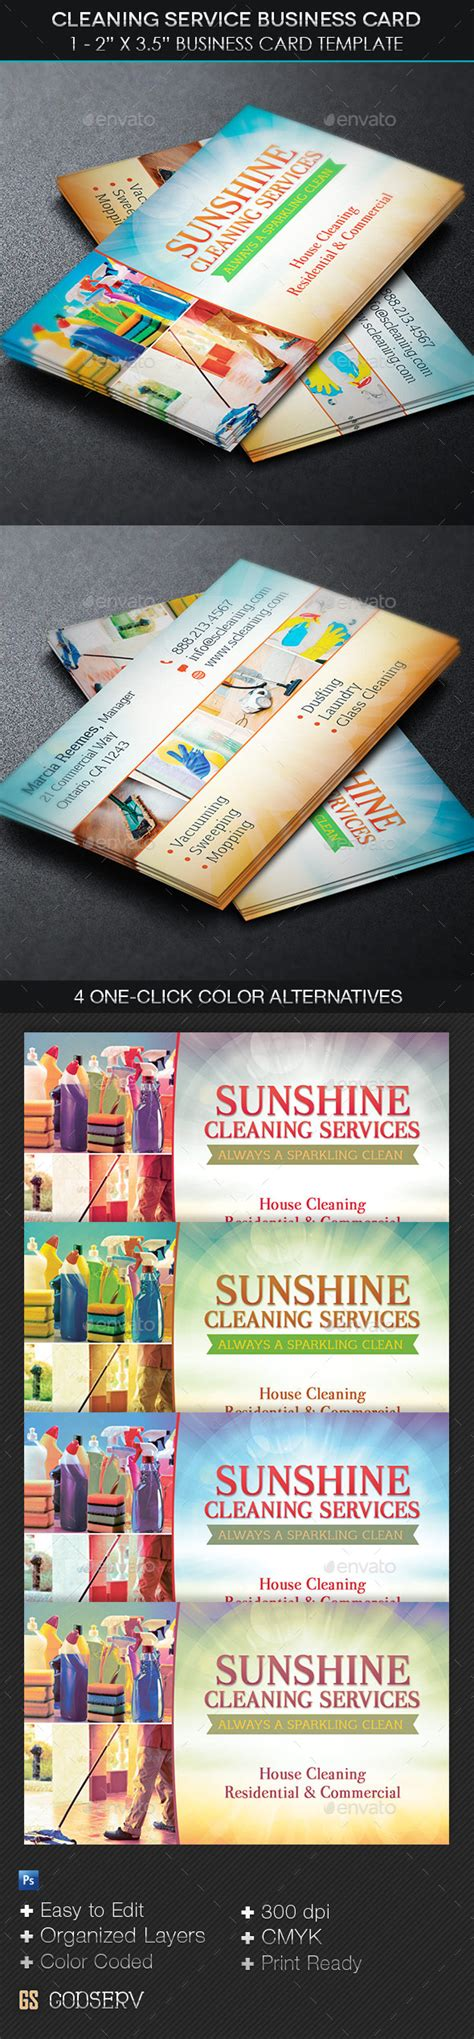 http graphicriver net item funeral service business card template 10998645 cleaning service business card template by godserv